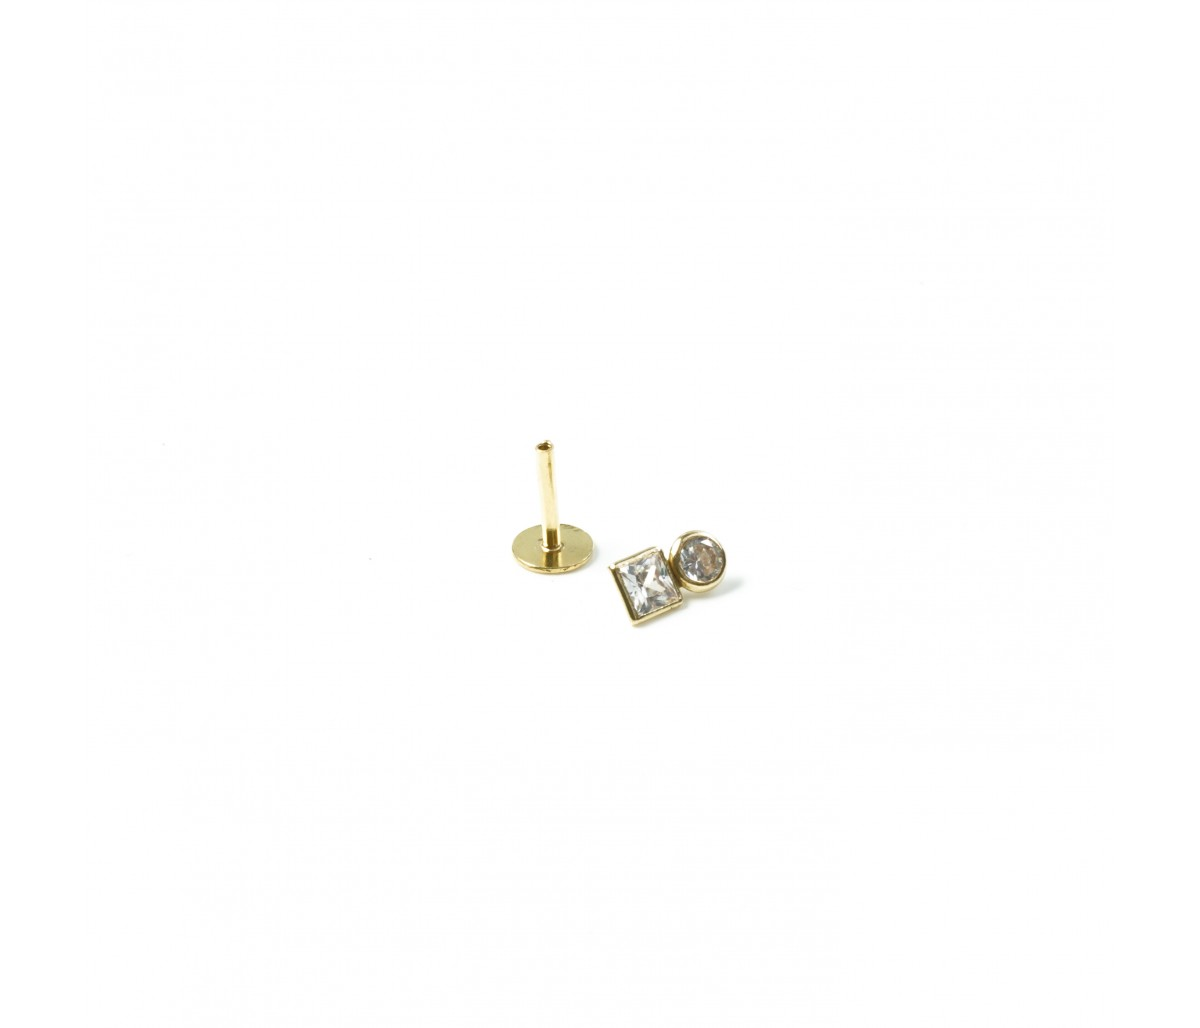 Carry 18k gold piercing